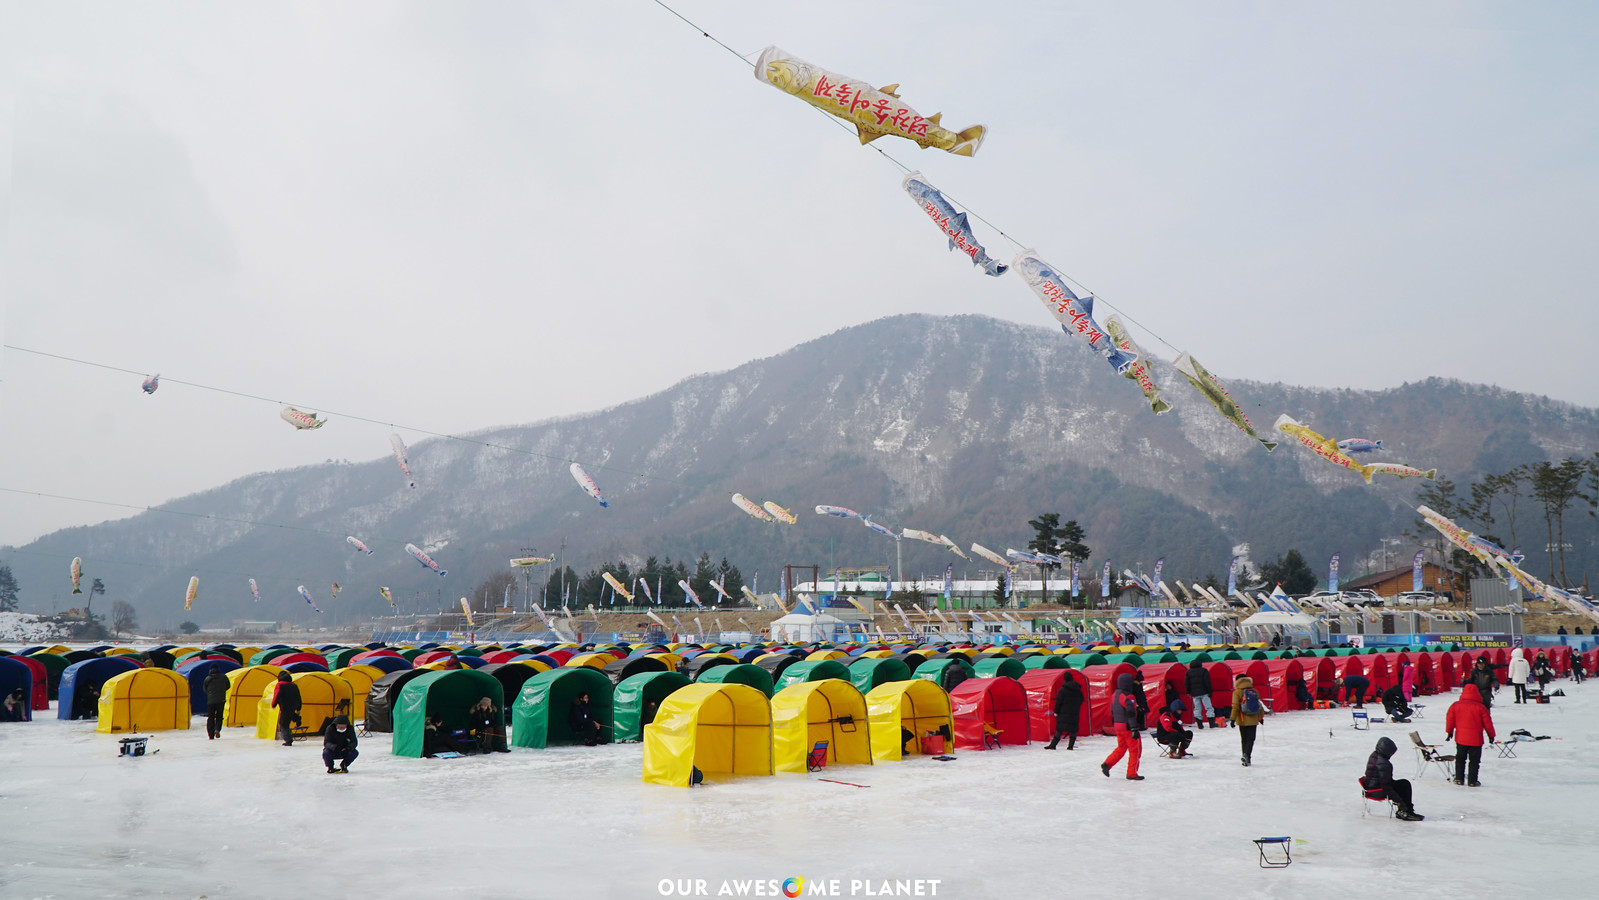 Trout Festival at the Winter Wonderland 📍 Pyeongchang, South Korea